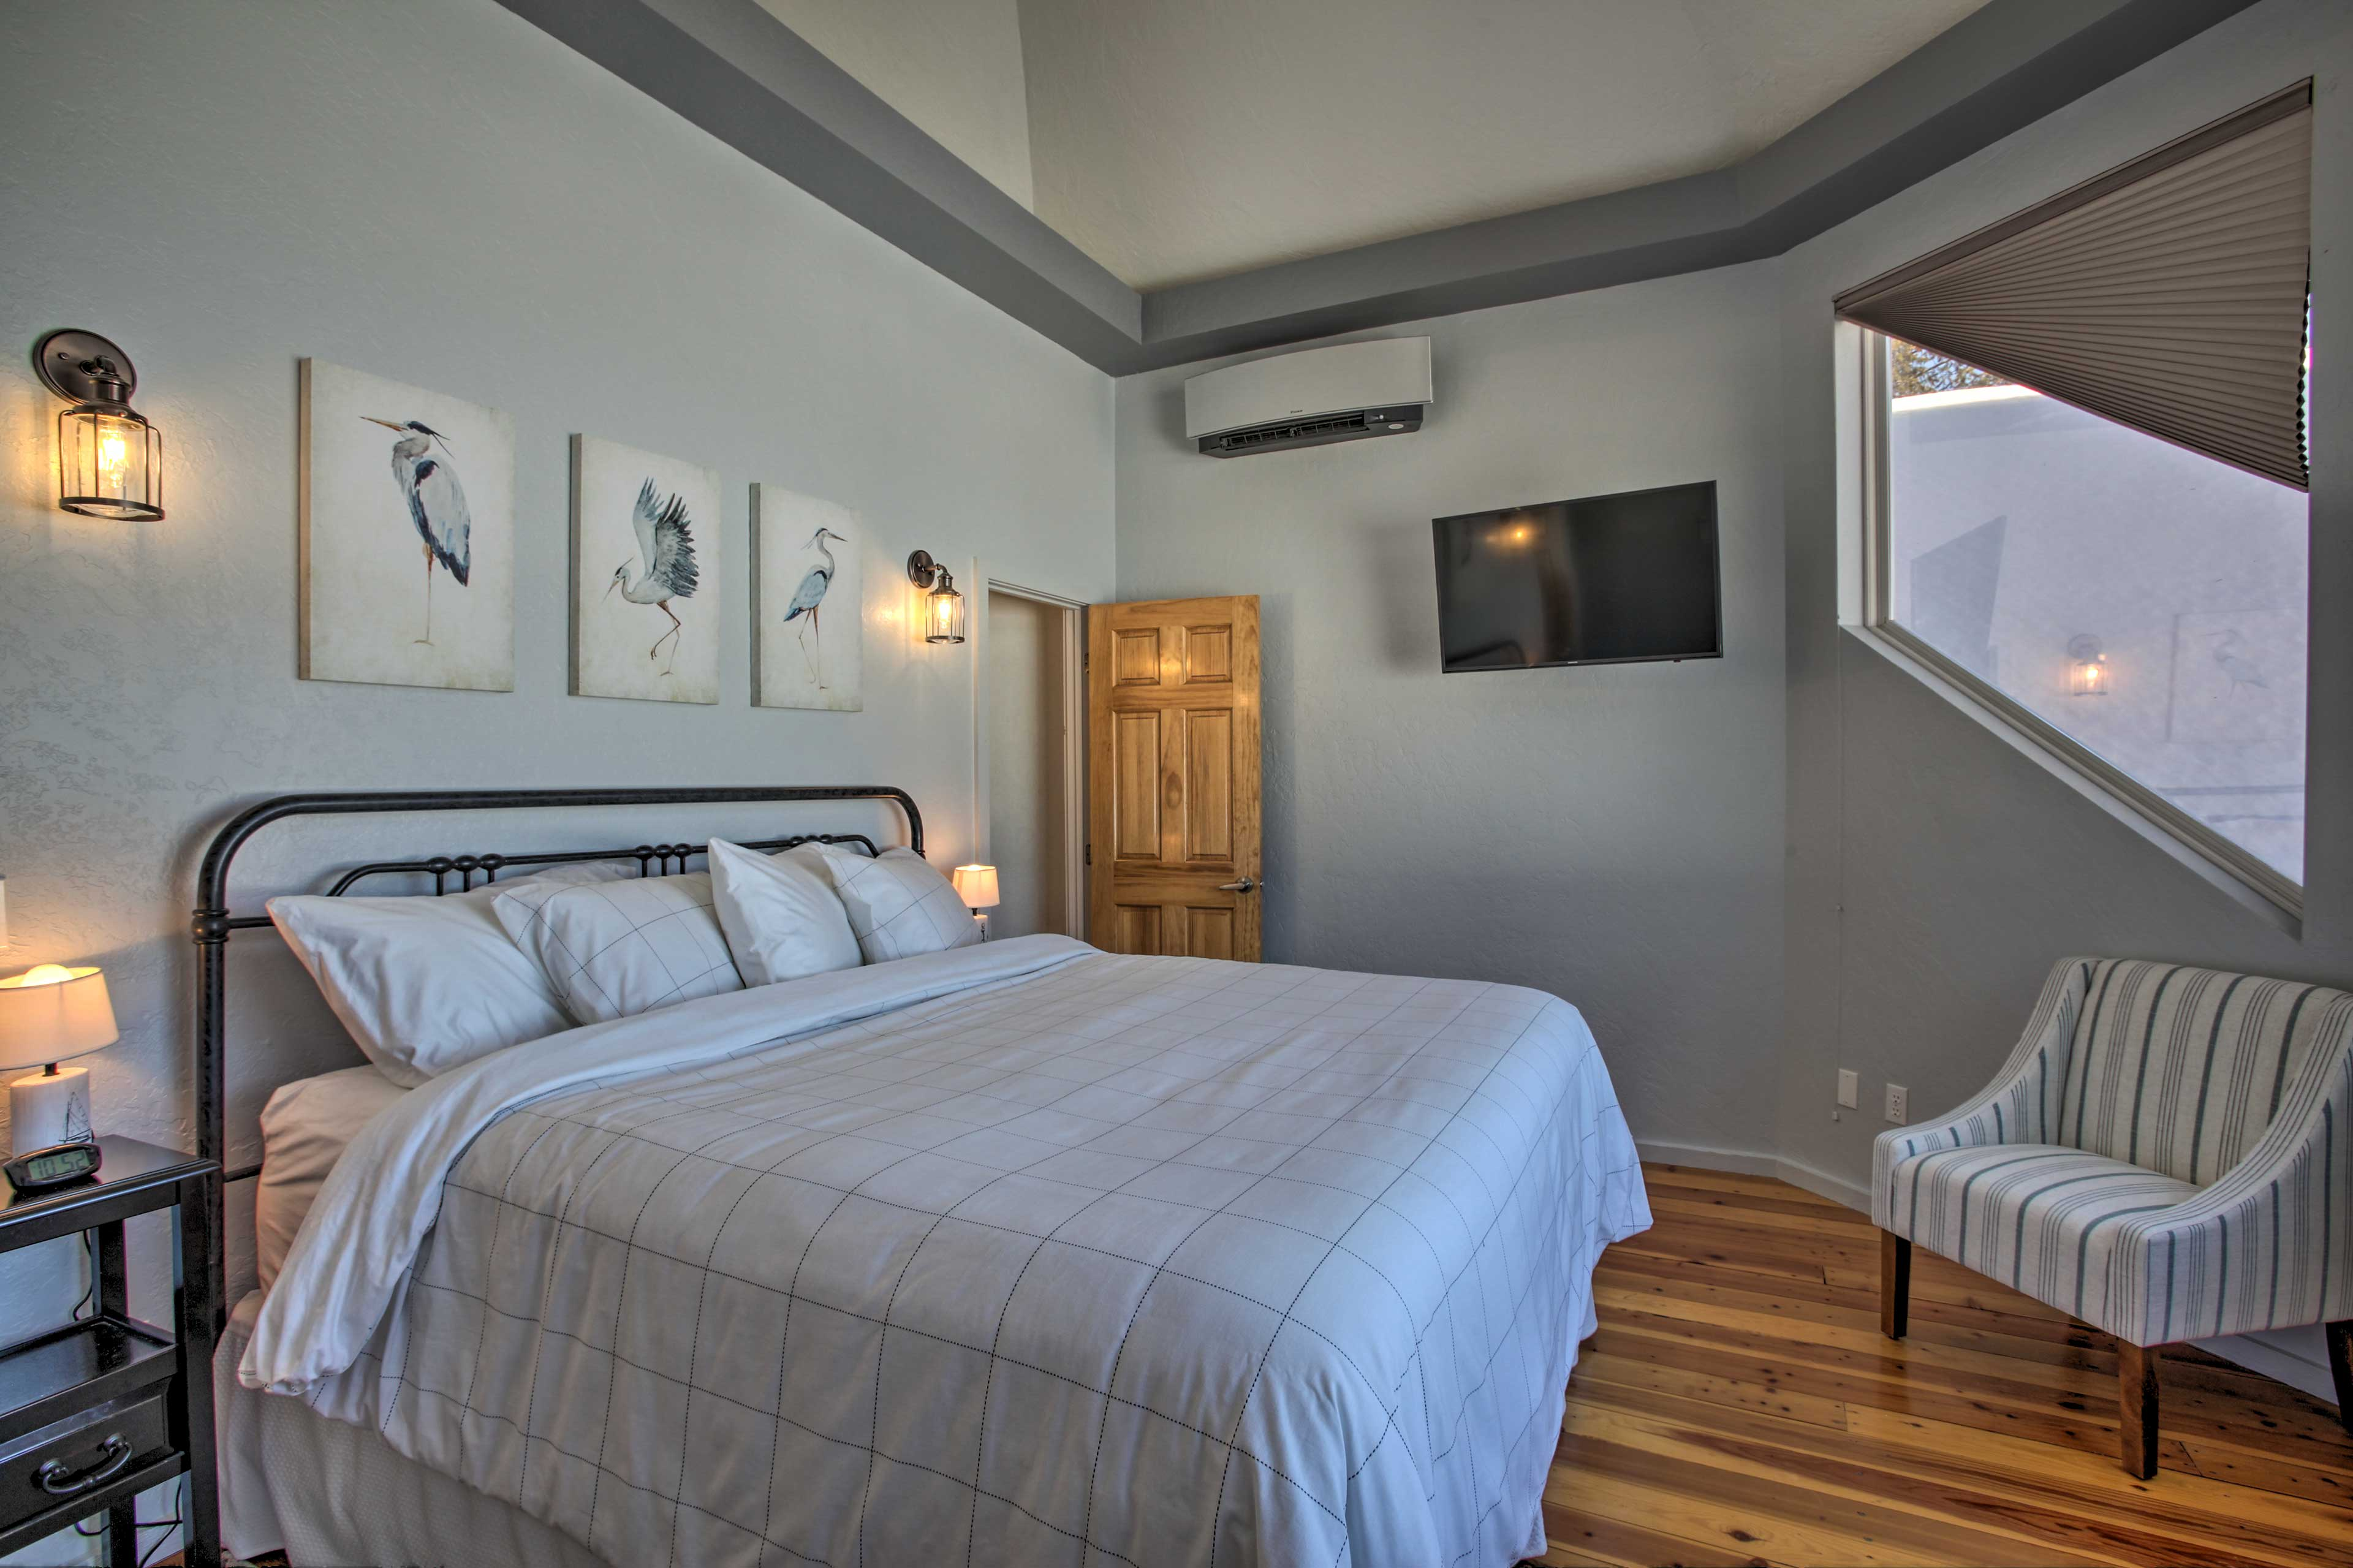 The master bedroom houses a king-sized bed and Smart TV.